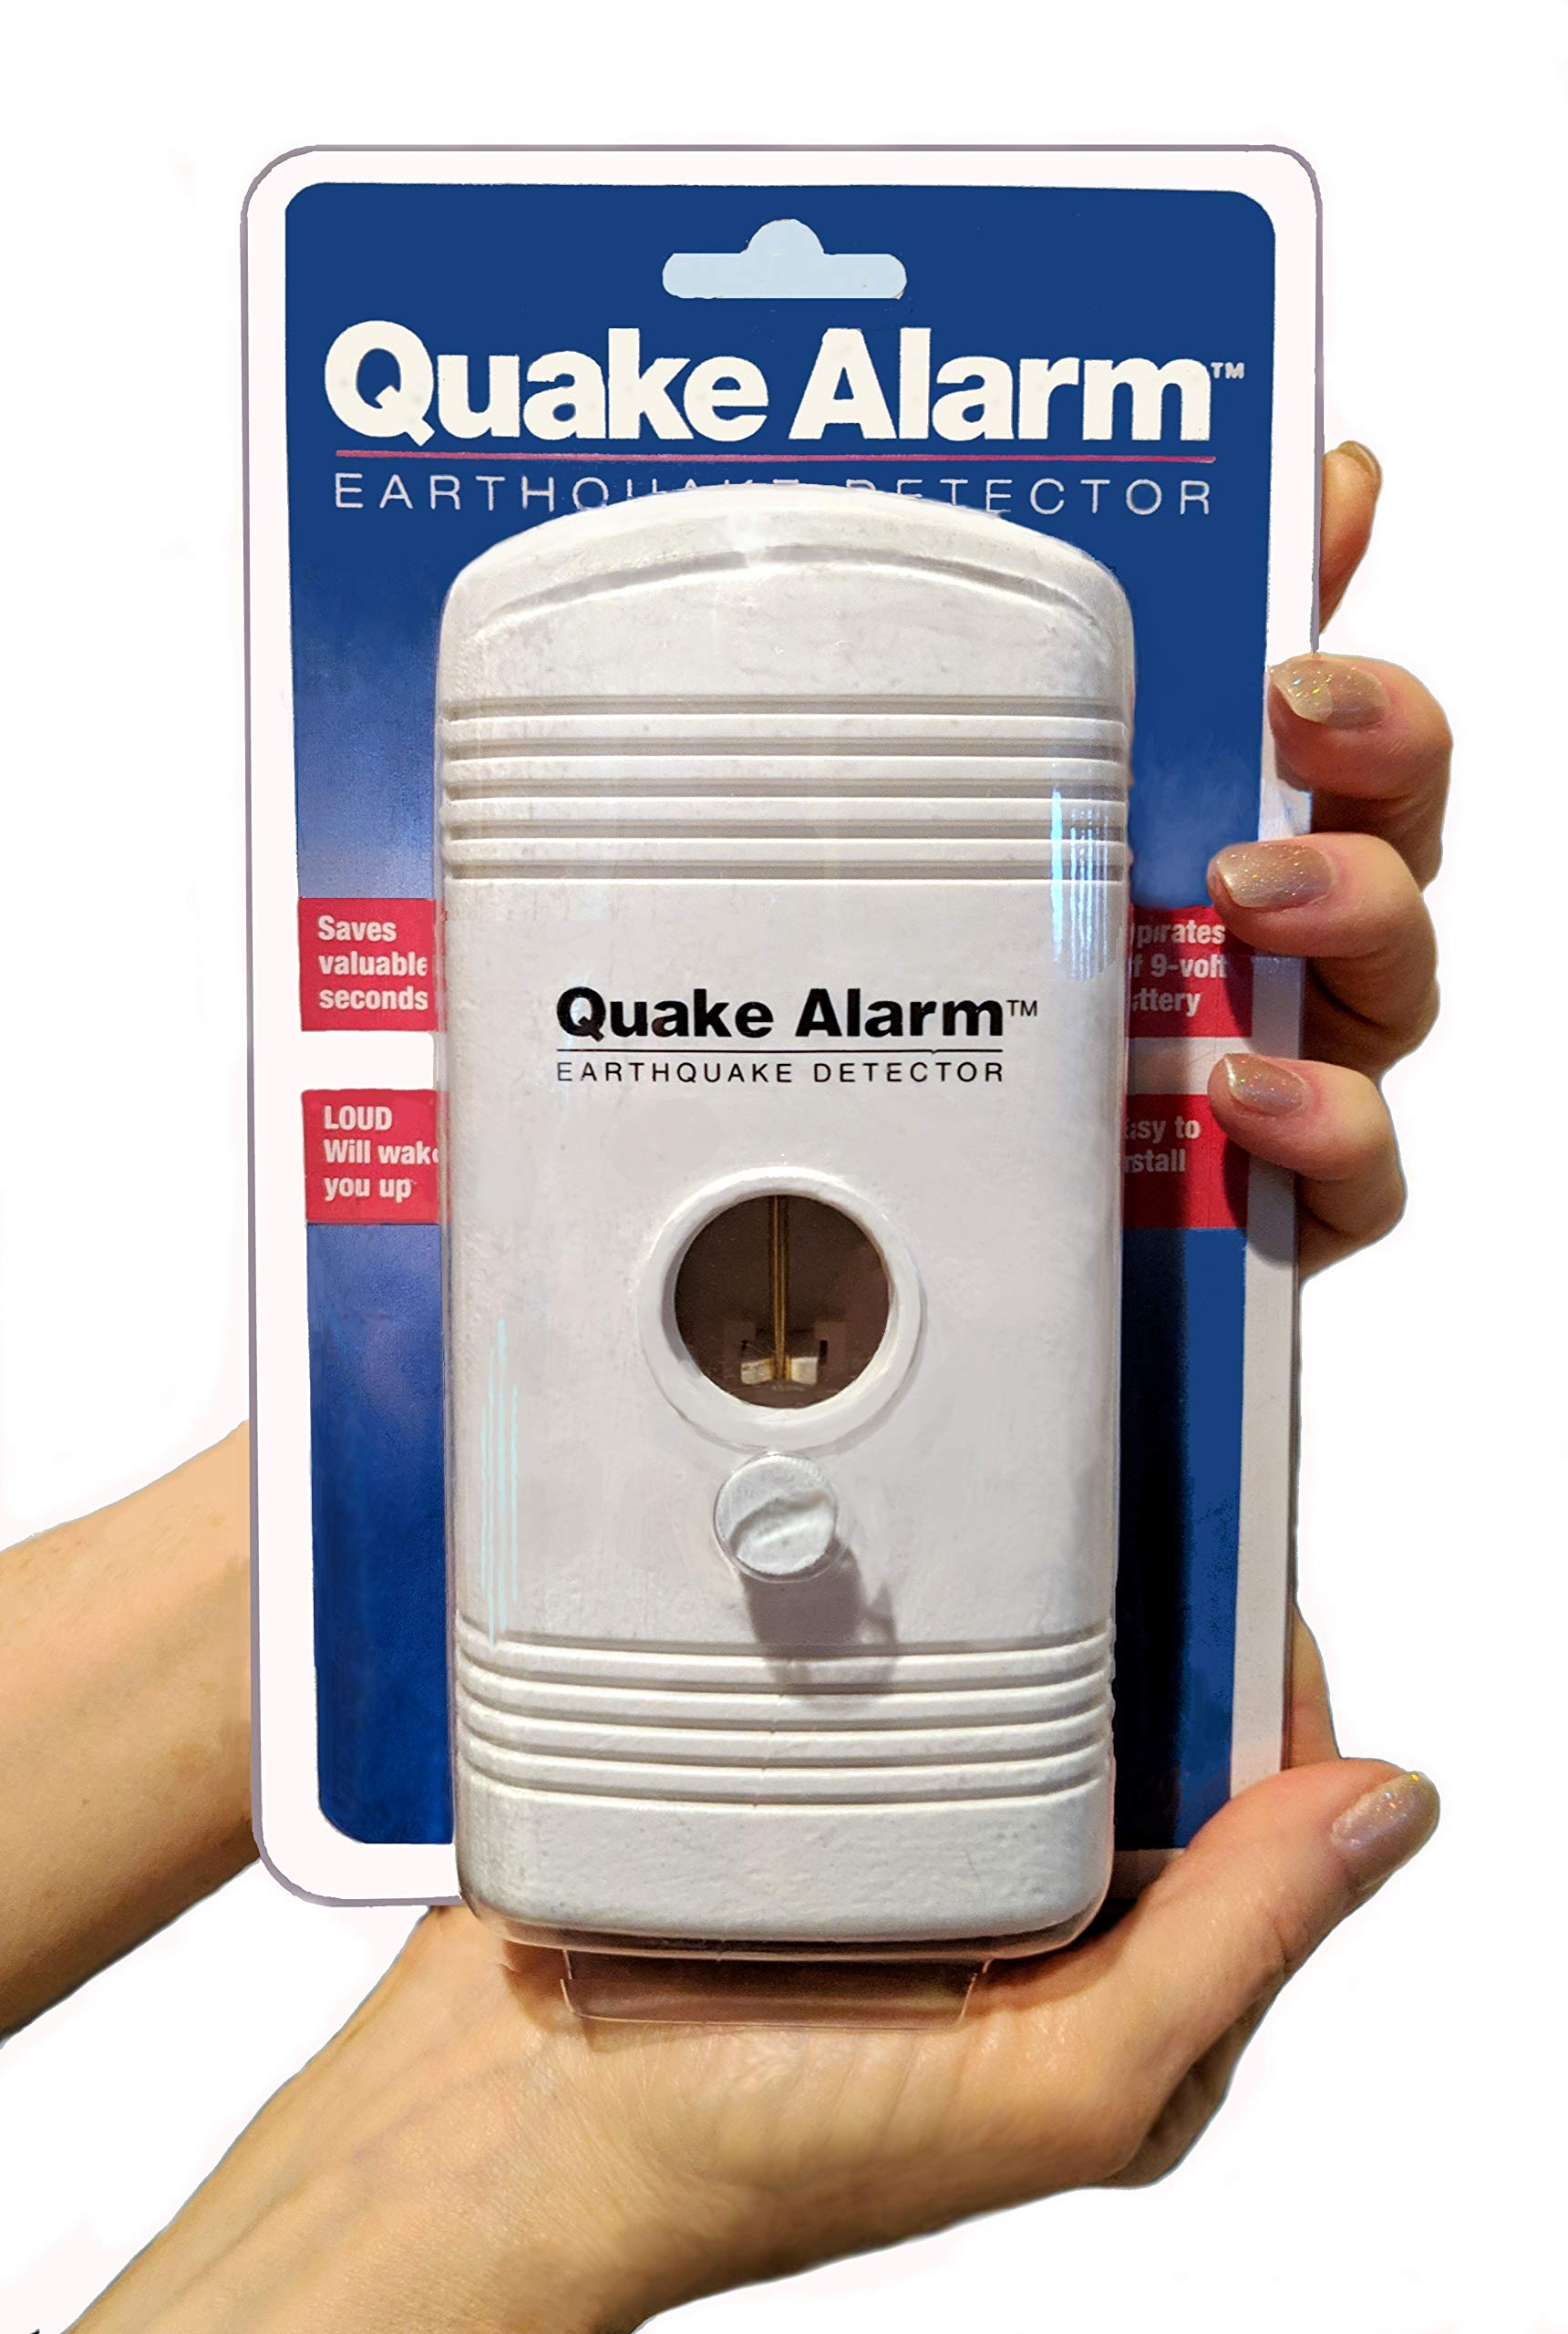 Quake Alarm - US Patent #5,475,372. Model JDS QA-2000 Featured on Los Angeles ABC-7 News. Can Wake You up so You Will be Instantly alerted. When Seconds Count, be Prepared!